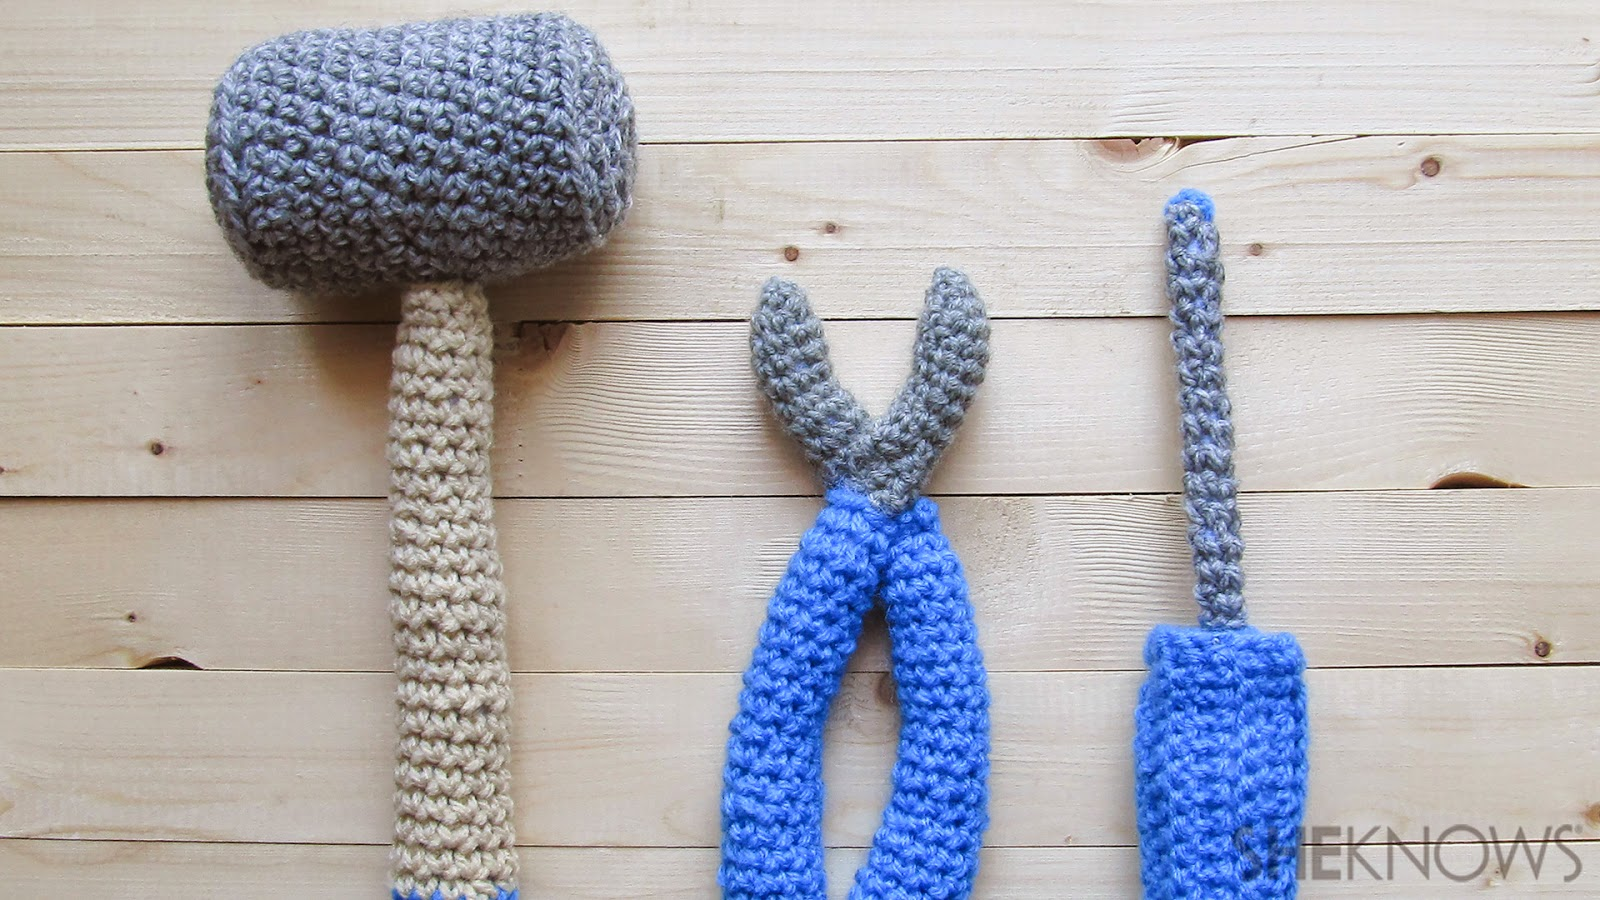 http://www.sheknows.com/living/articles/1038605/crochet-tools-for-fathers-day